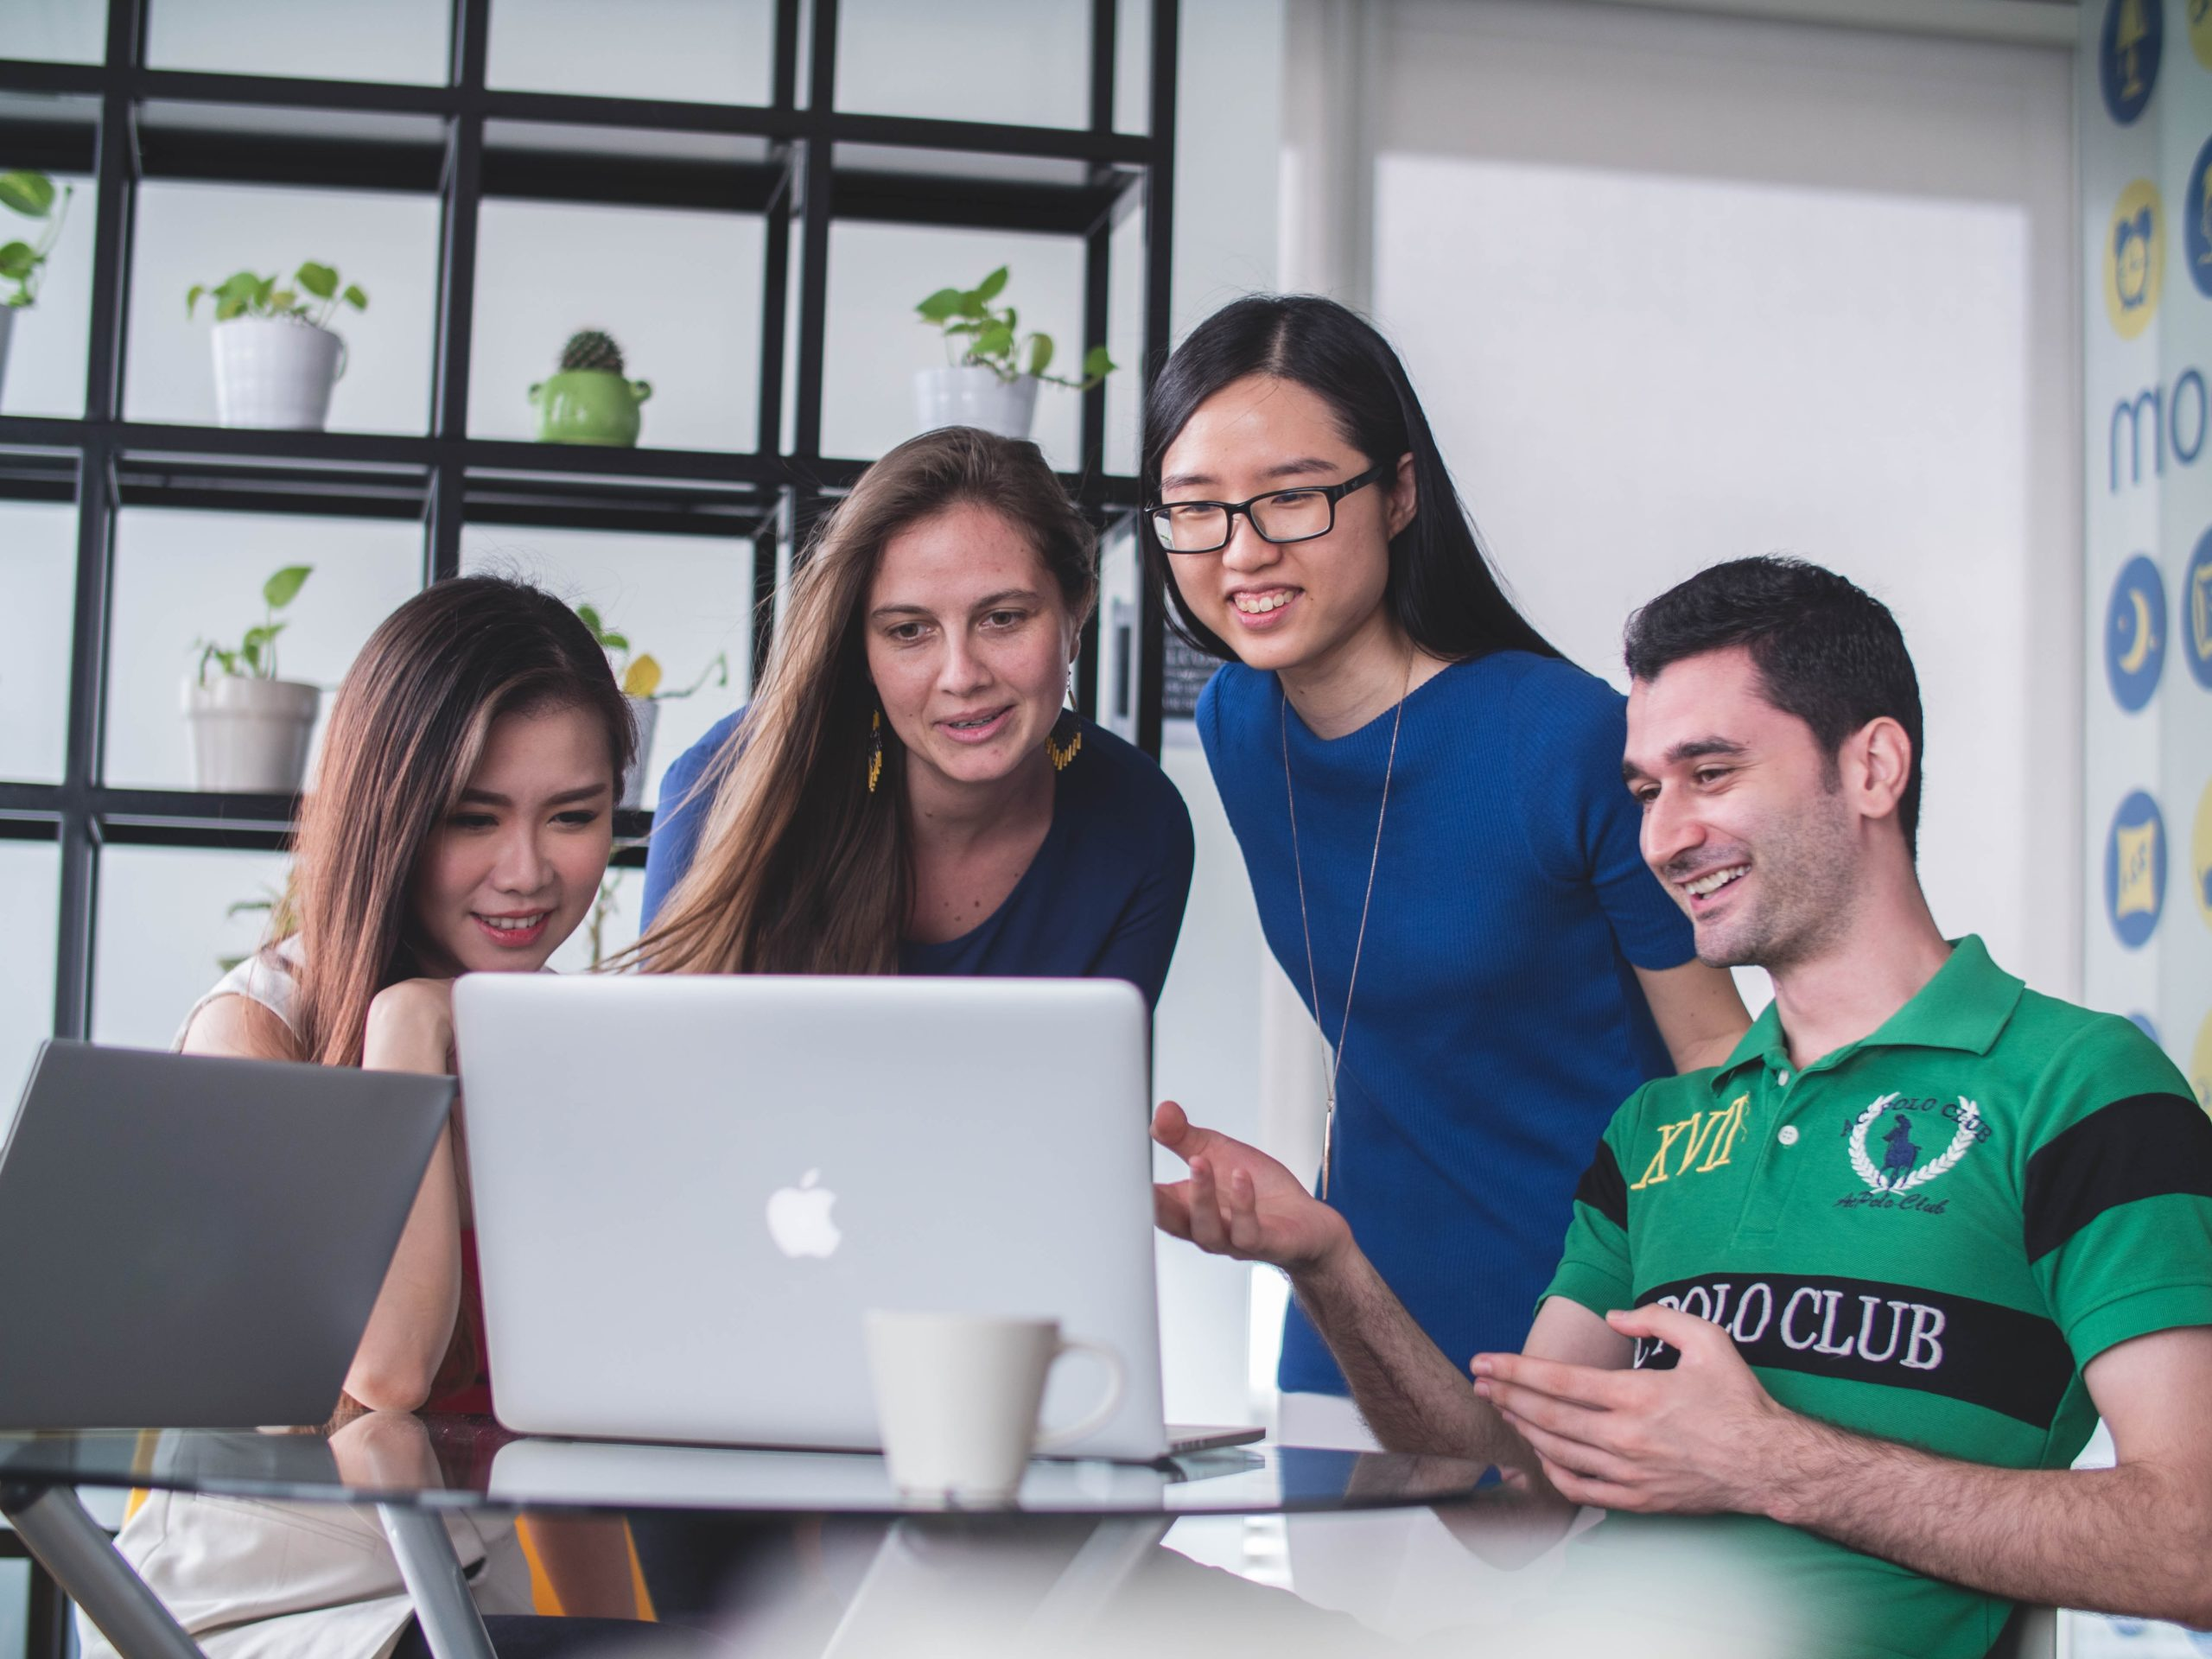 Four people in an office looking at a laptop screen and smiling